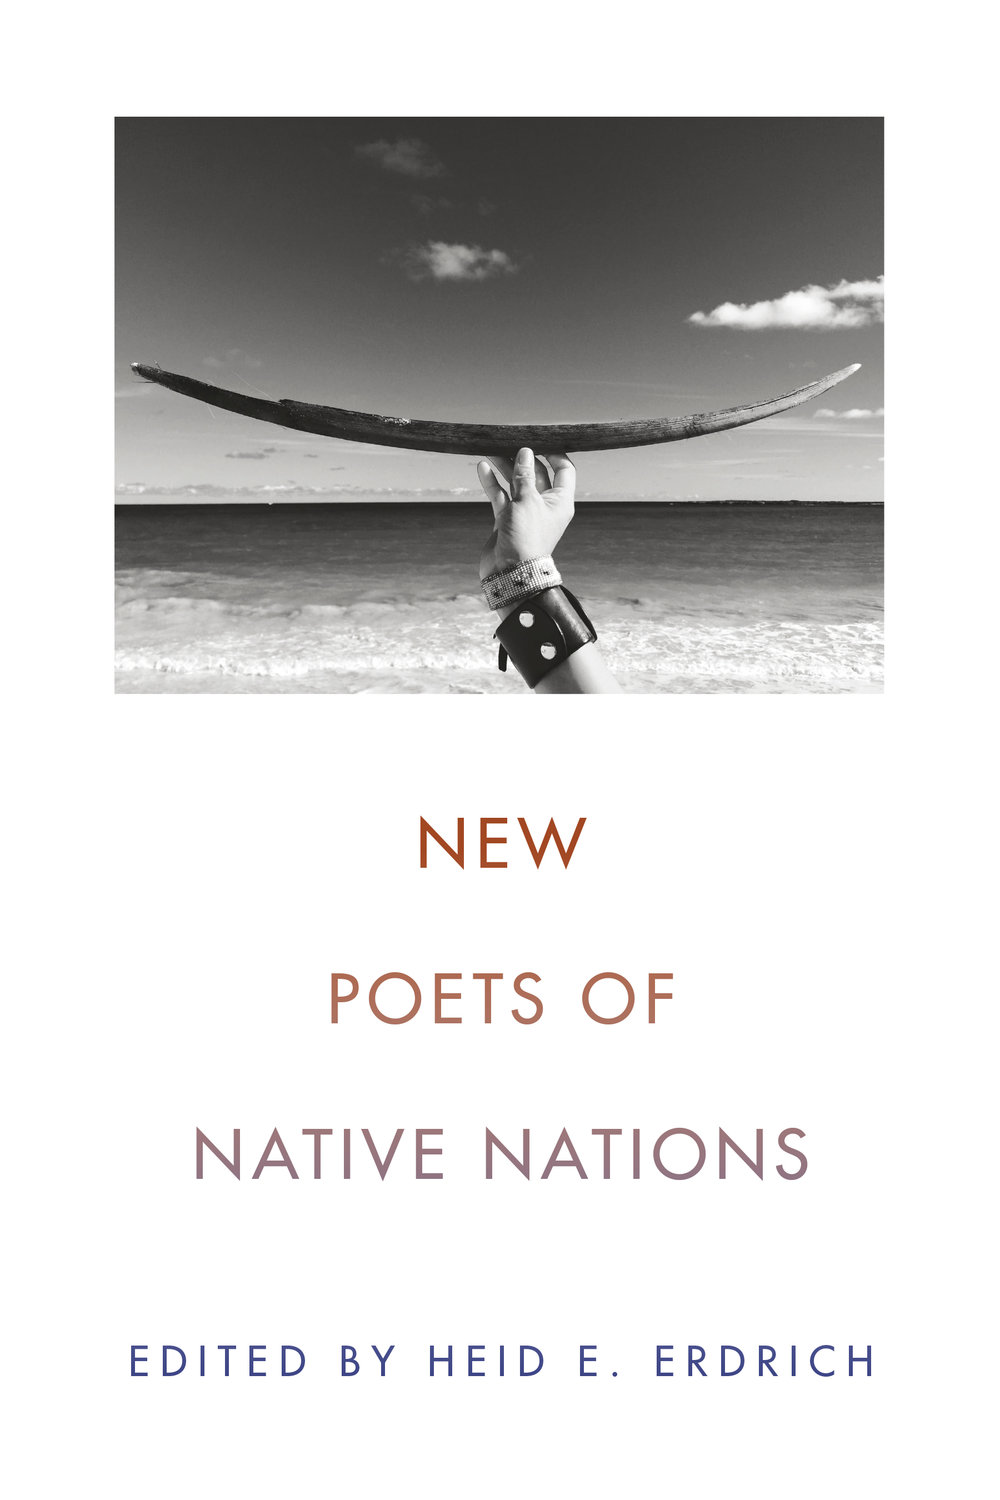 New Poets of Native Nations , ed. Heid E. Erdrich. Graywolf Press, July 2018. 304 pp.